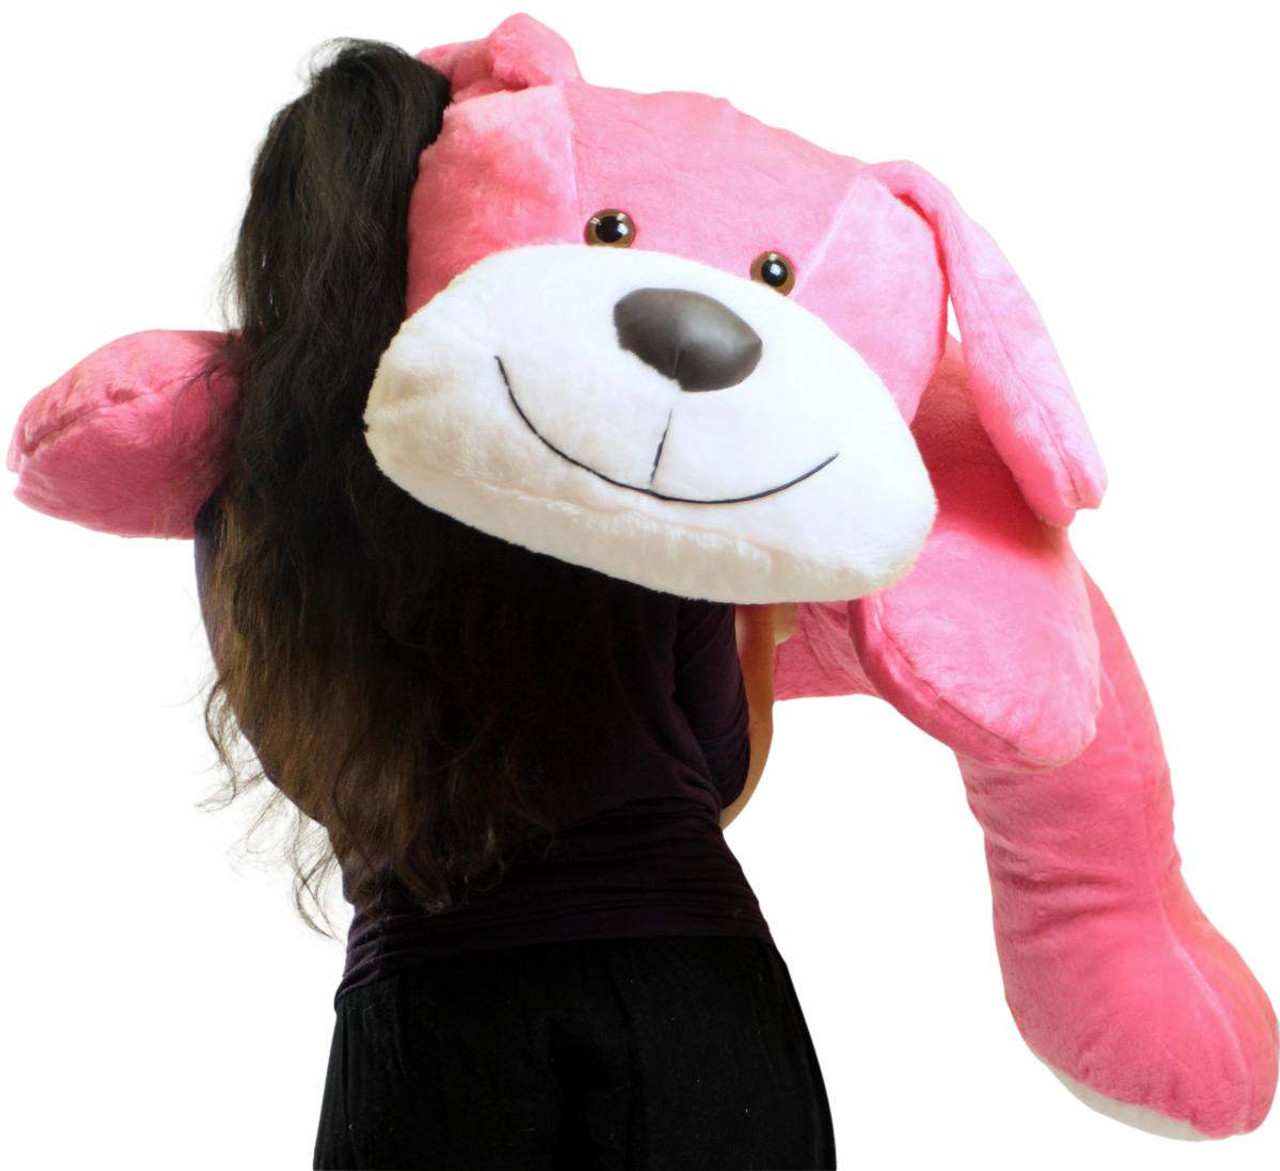 Giant Stuffed Pink Dog 5 Foot Big Plush Puppy Soft 60 Inch Snuggle